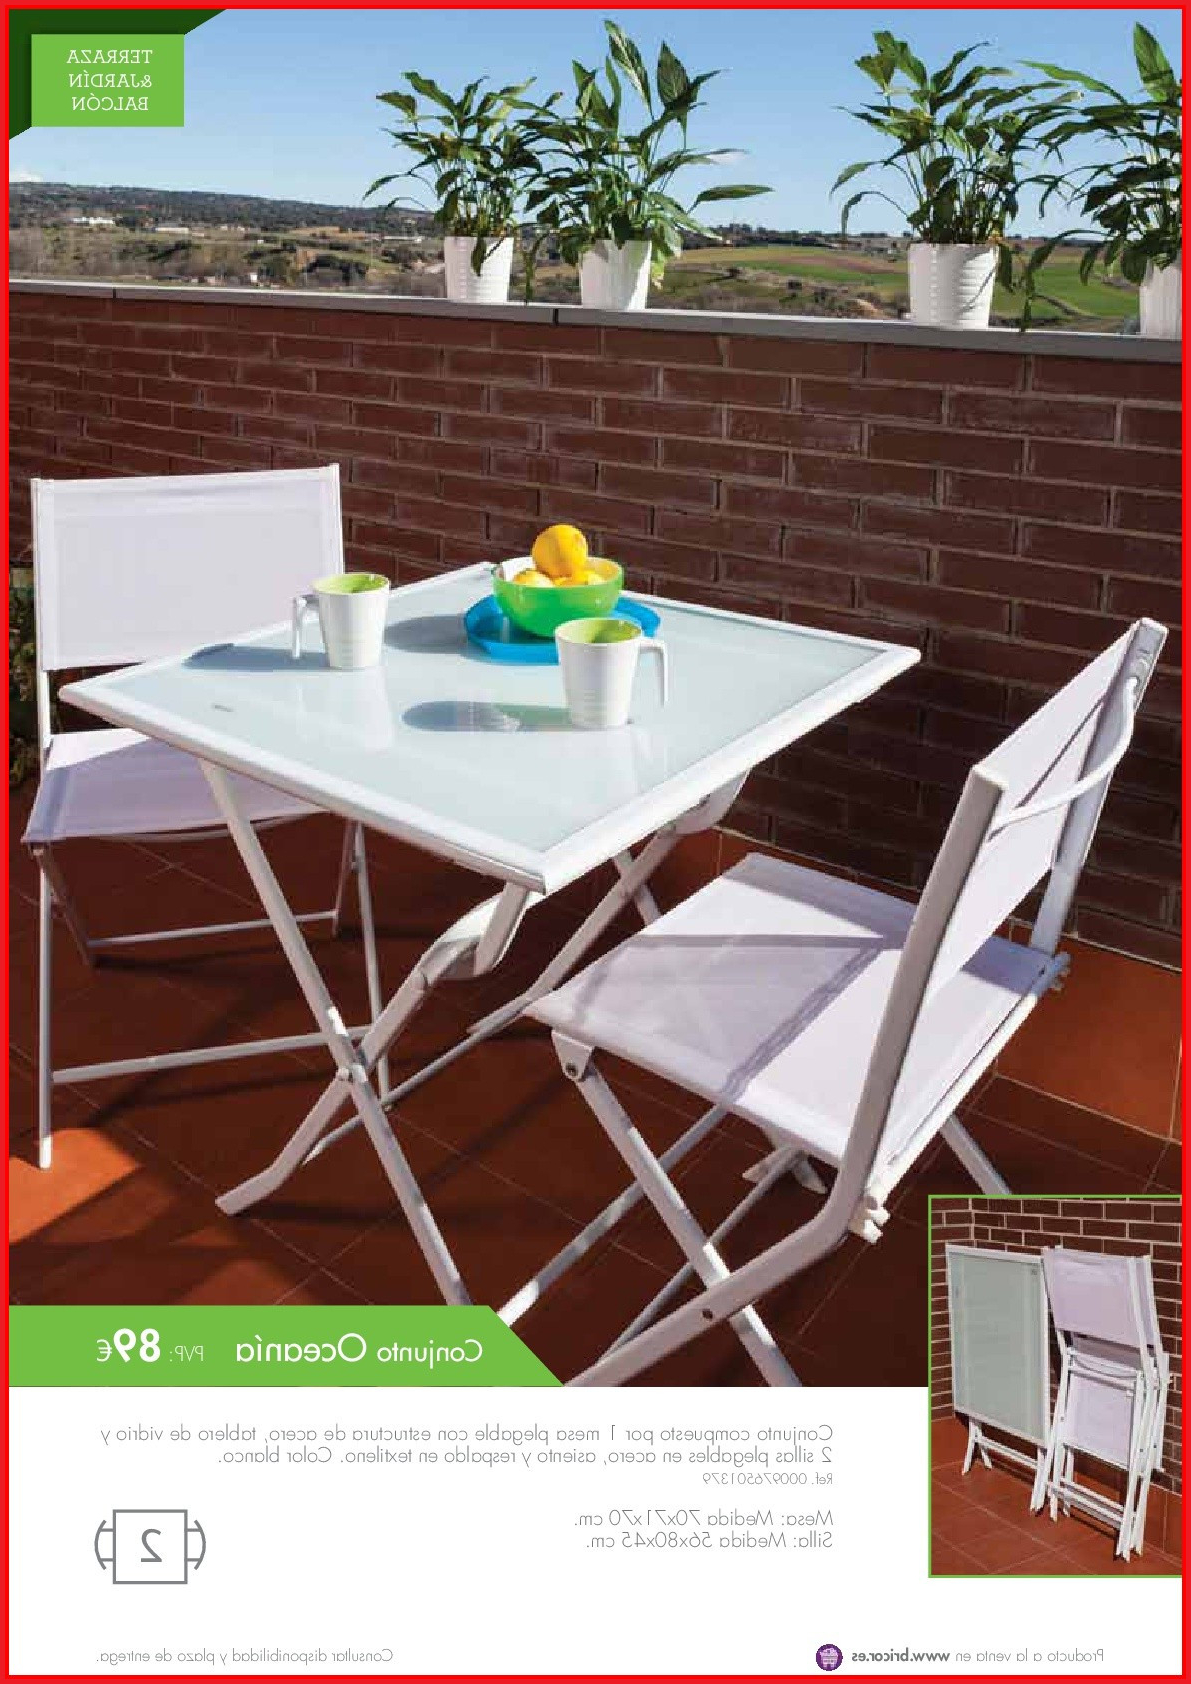 Mesa Plegable Bricor 3ldq Mesa Plegable Bricor Mesa Plegable Bricor Bricor Muebles